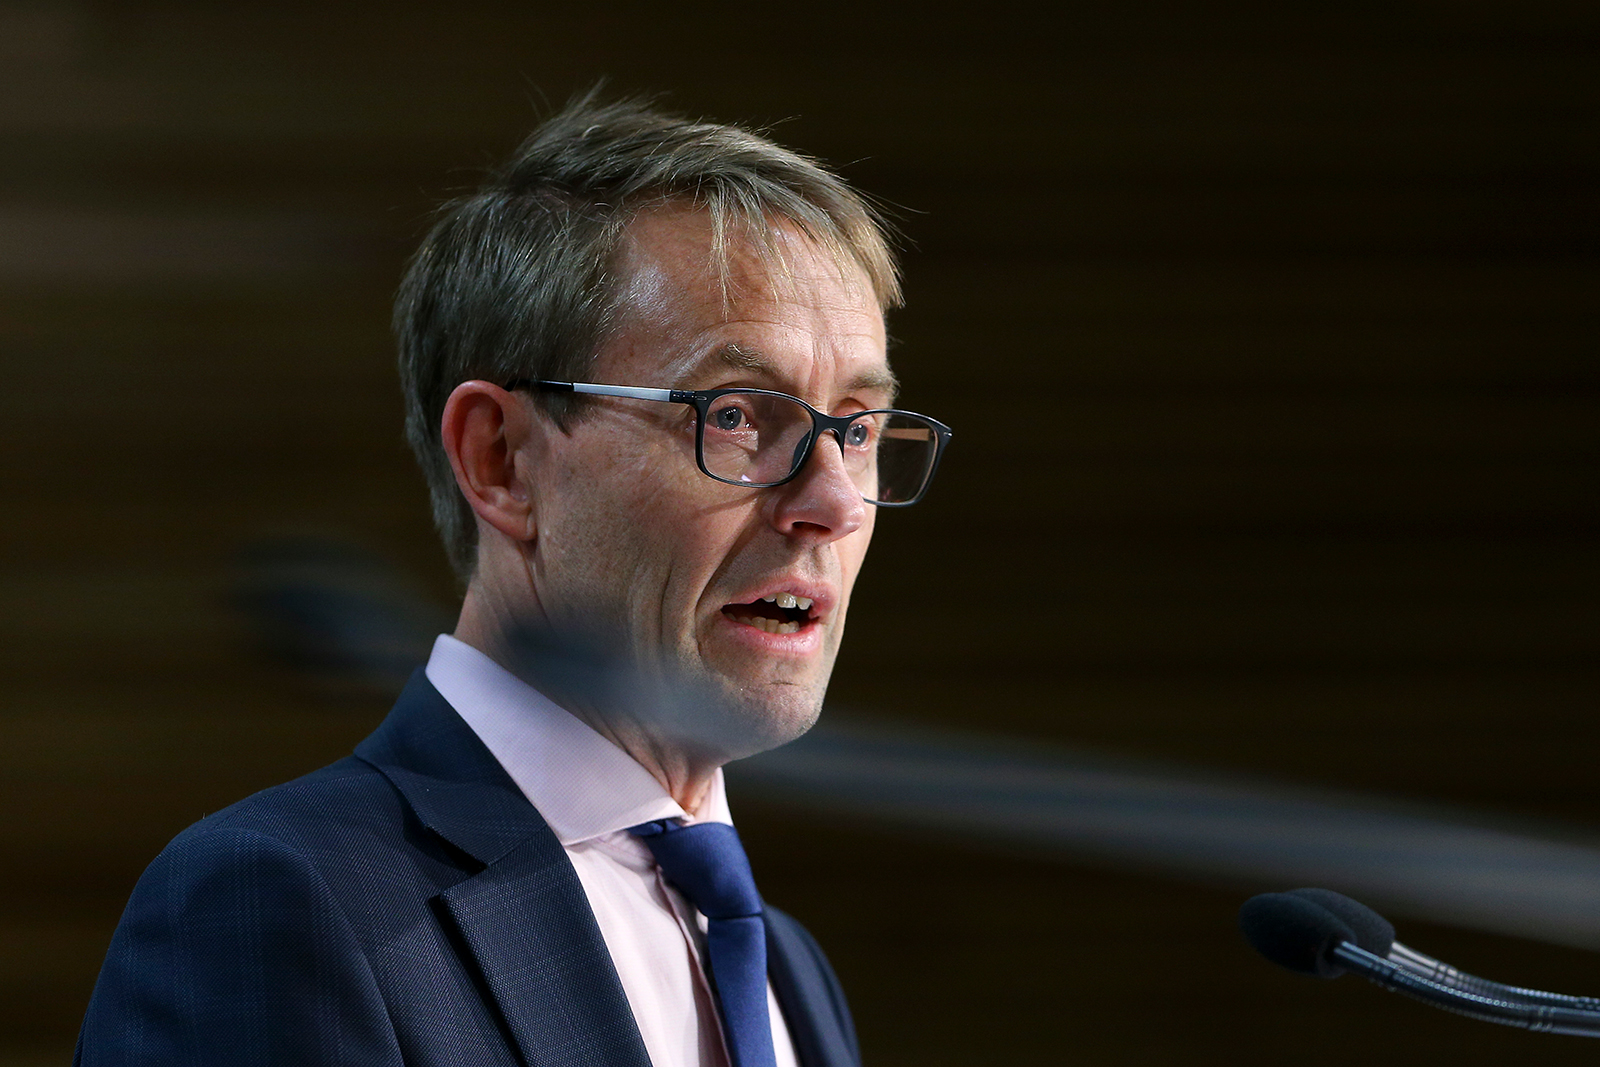 Director-General of Health Dr. Ashley Bloomfield speaks to media during a press conference at Parliament in Wellington, New Zealand on August 14.